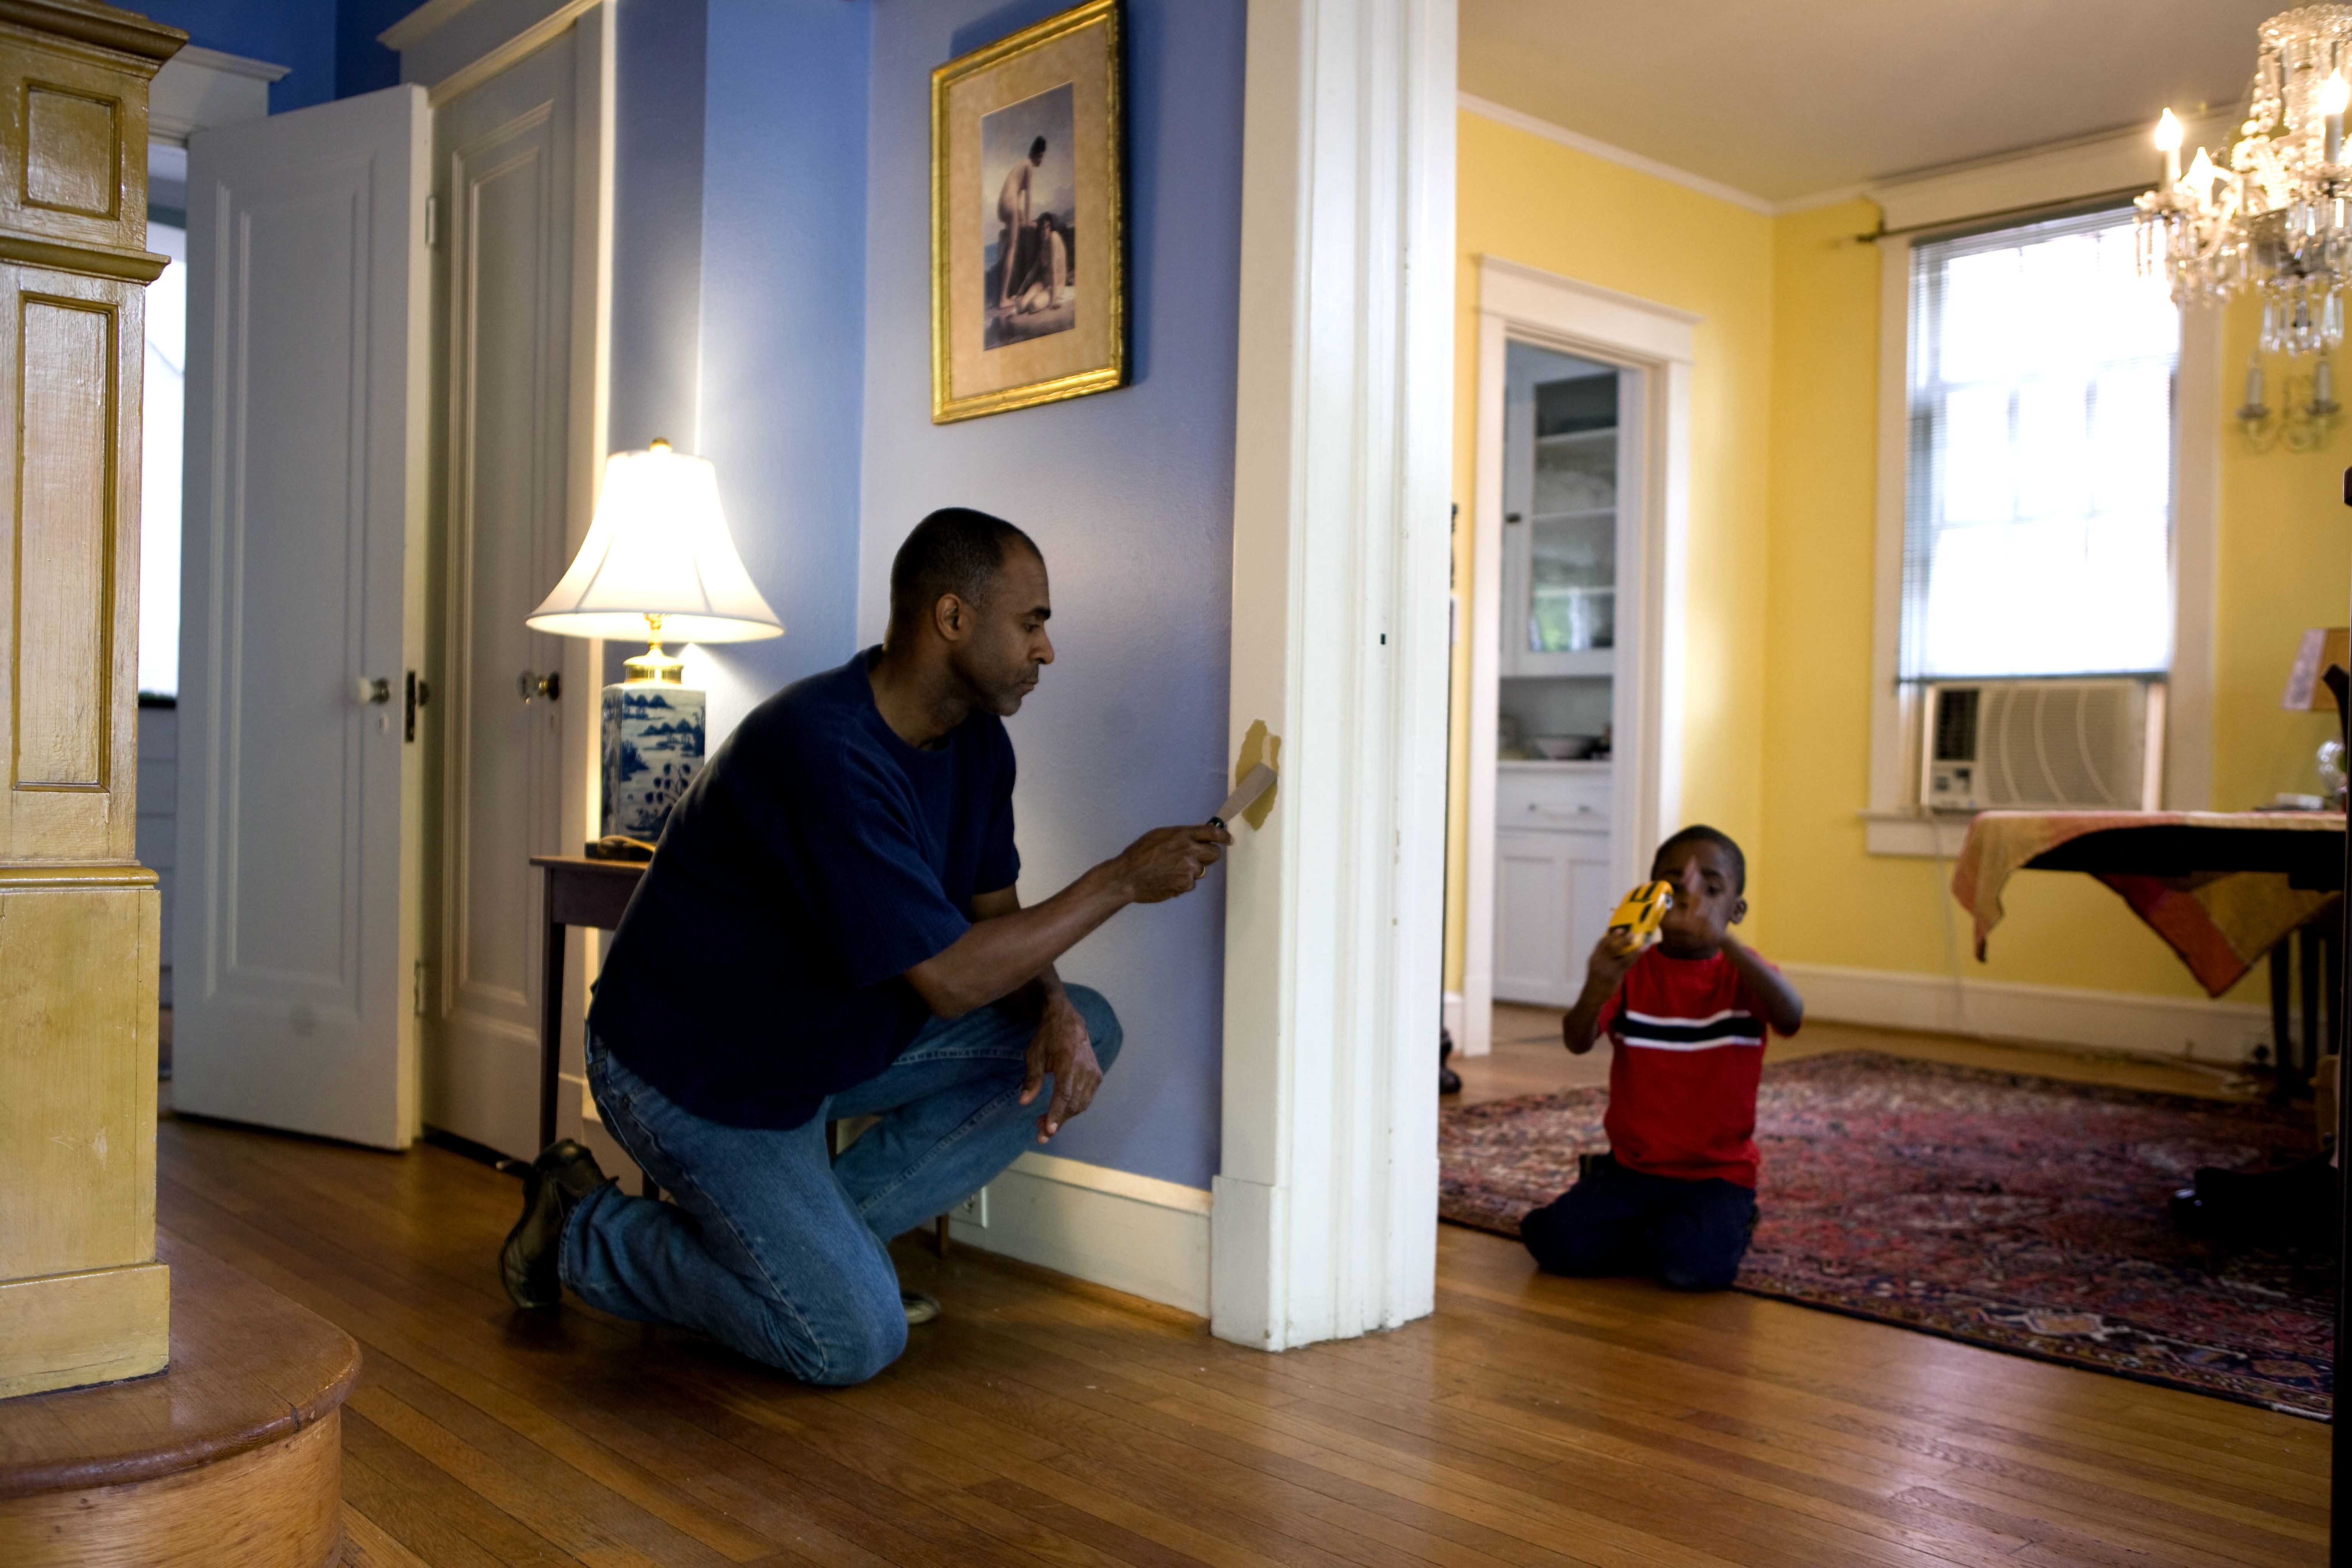 free picture man painting interior door frame home young son. Black Bedroom Furniture Sets. Home Design Ideas